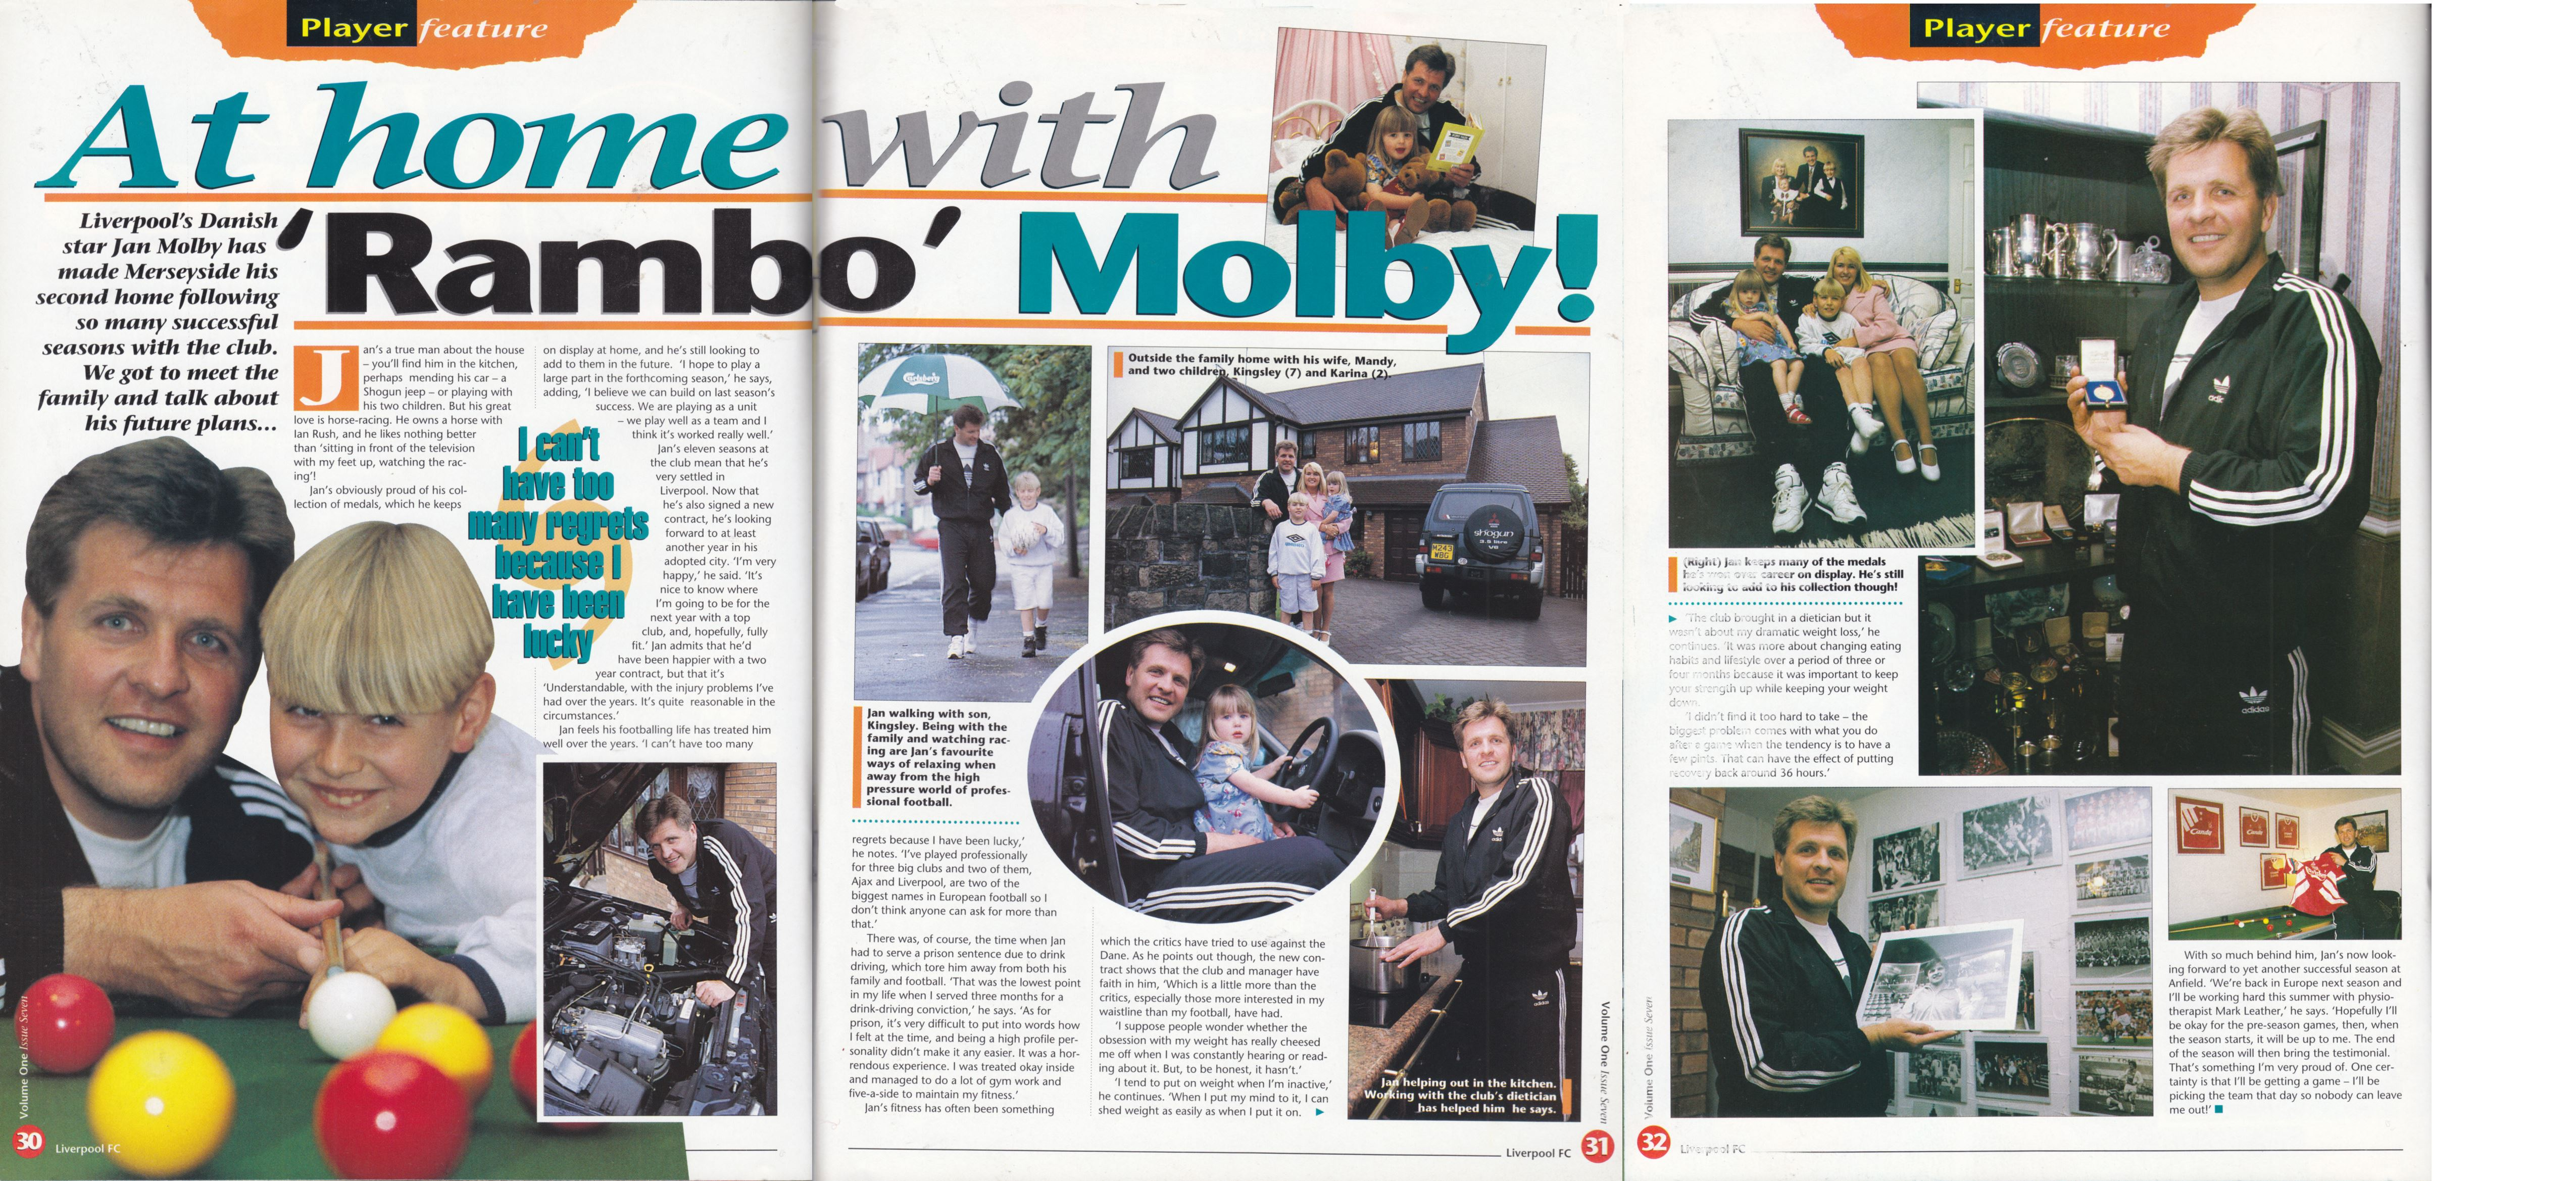 At home with Mølby - The Official Liverpool Magazine 1994/95